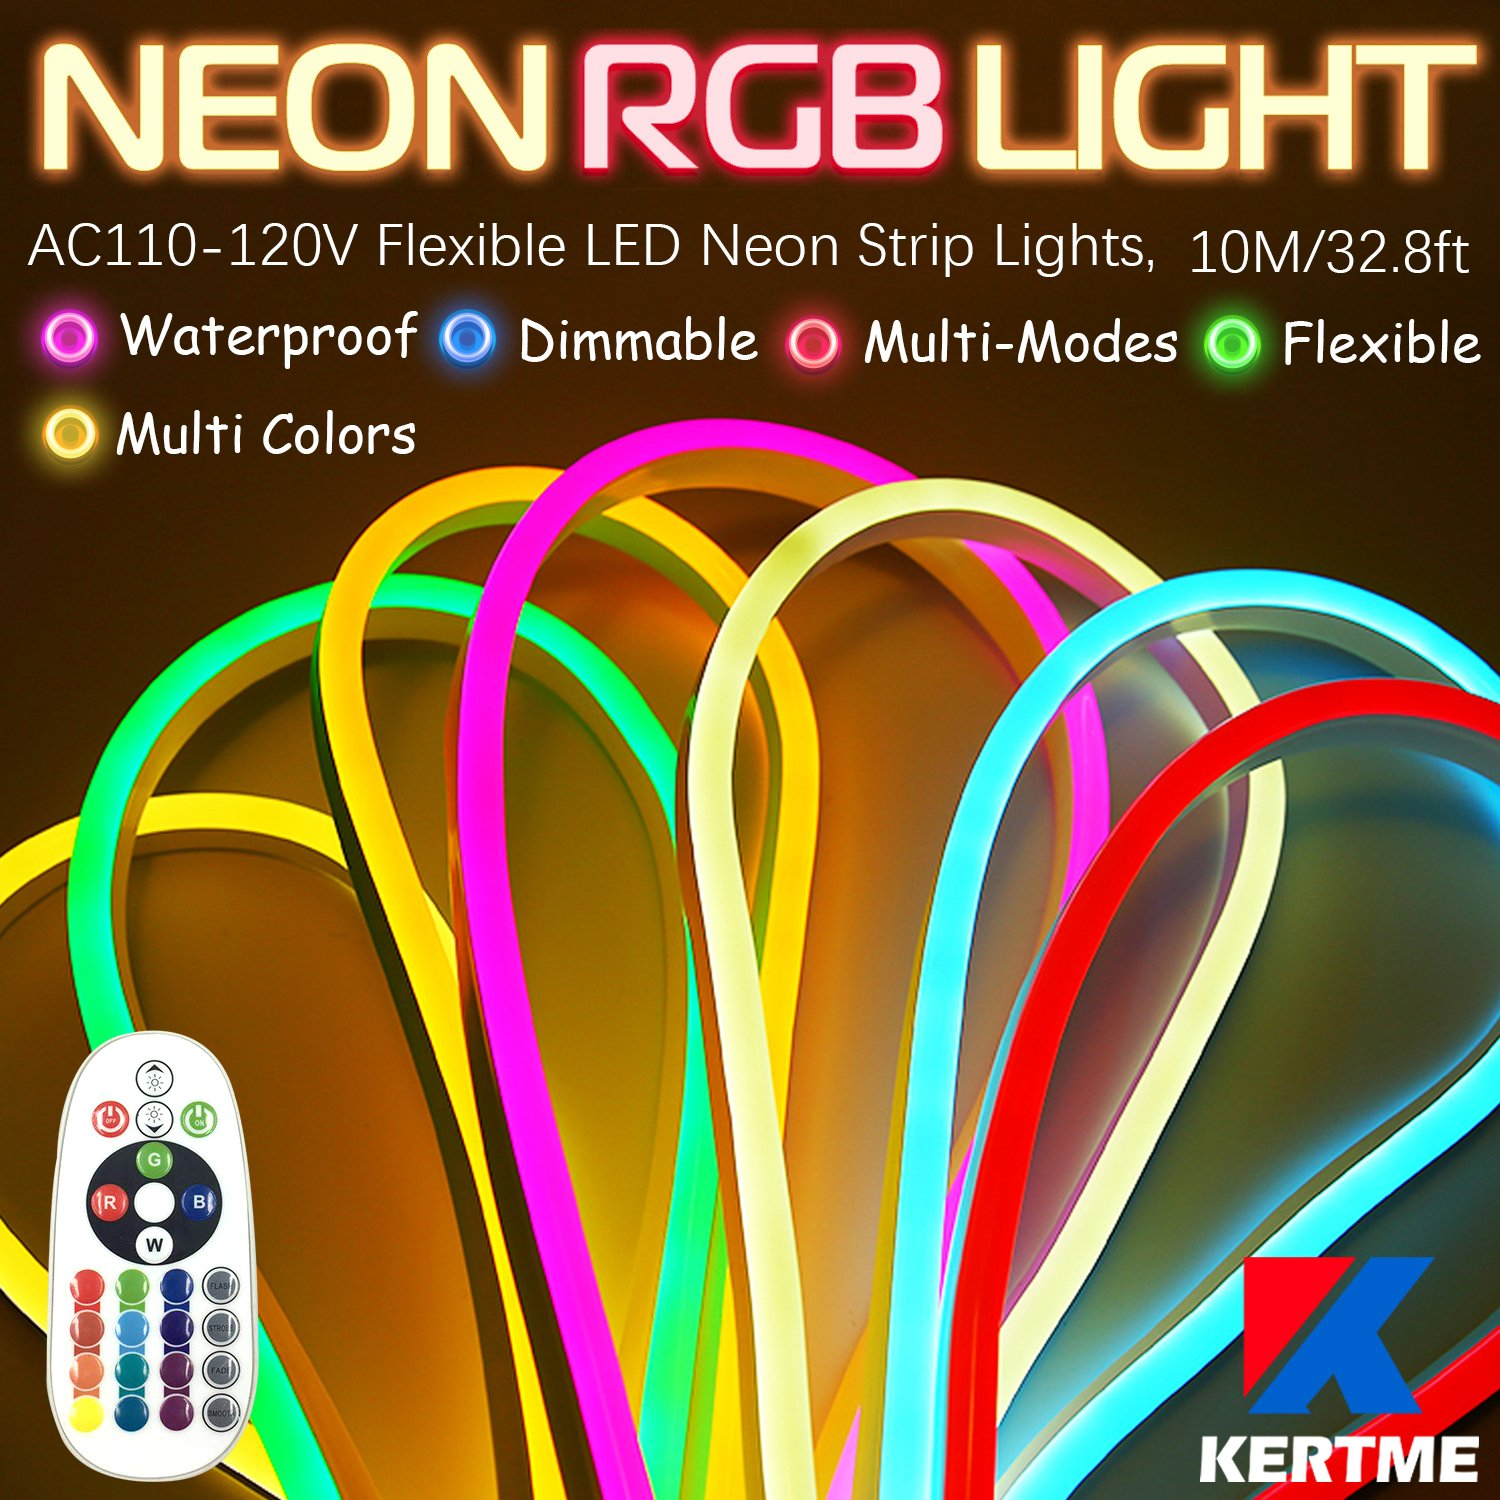 KERTME Neon Led Type AC 110-120V LED NEON LIGHT STRIP, Flexible/Waterproof/Dimmable/Multi-Colors/Multi-Modes LED Rope Light + 24 keys Remote for Home/Garden/Building Decoration (32.8ft/10m, RGB)